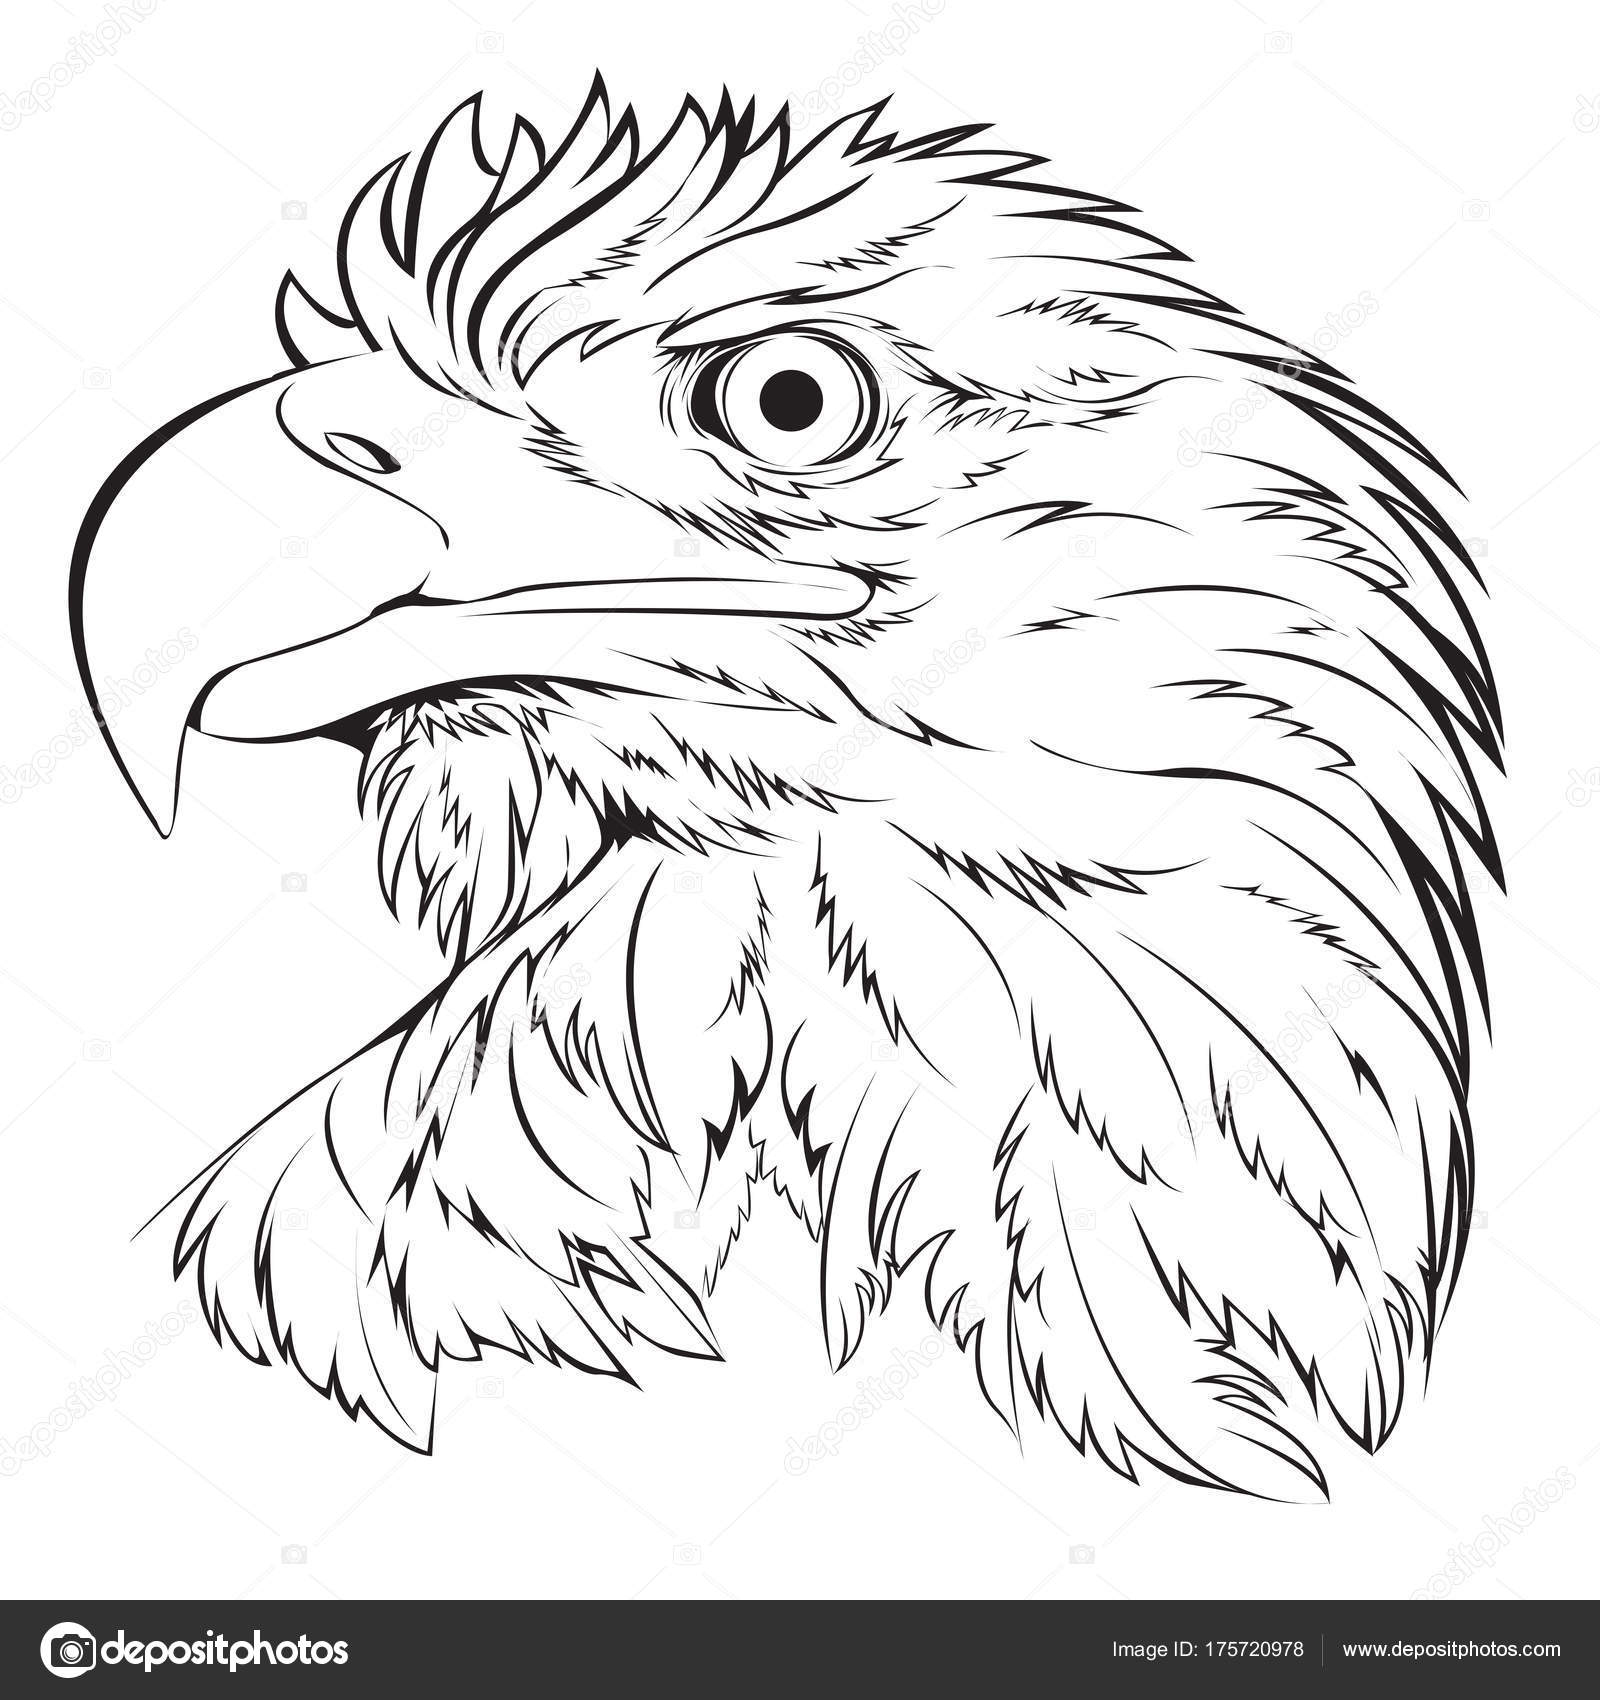 Bald eagle head hand draw black line on white background vector illustration stock illustration